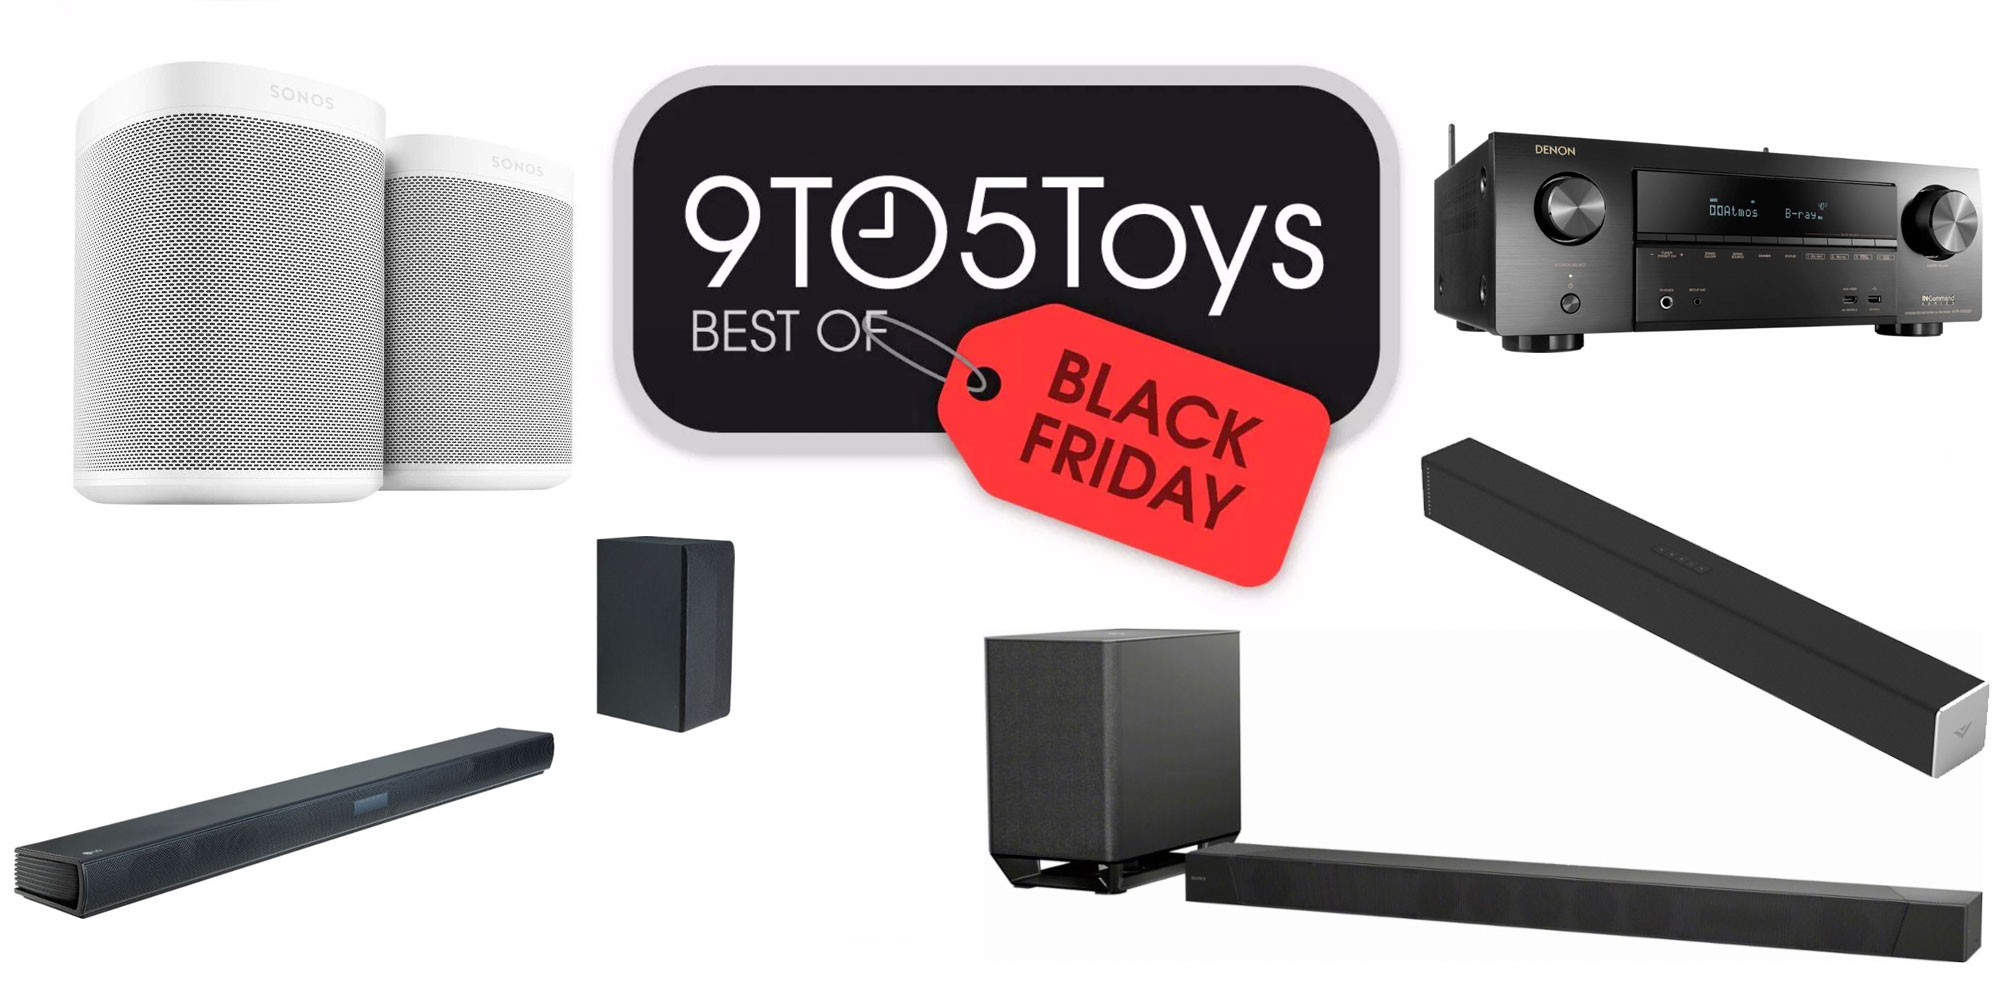 Best of Black Friday 2018 – Home Theater: Sonos, Dolby Atmos & AirPlay 2 A/V receivers, more